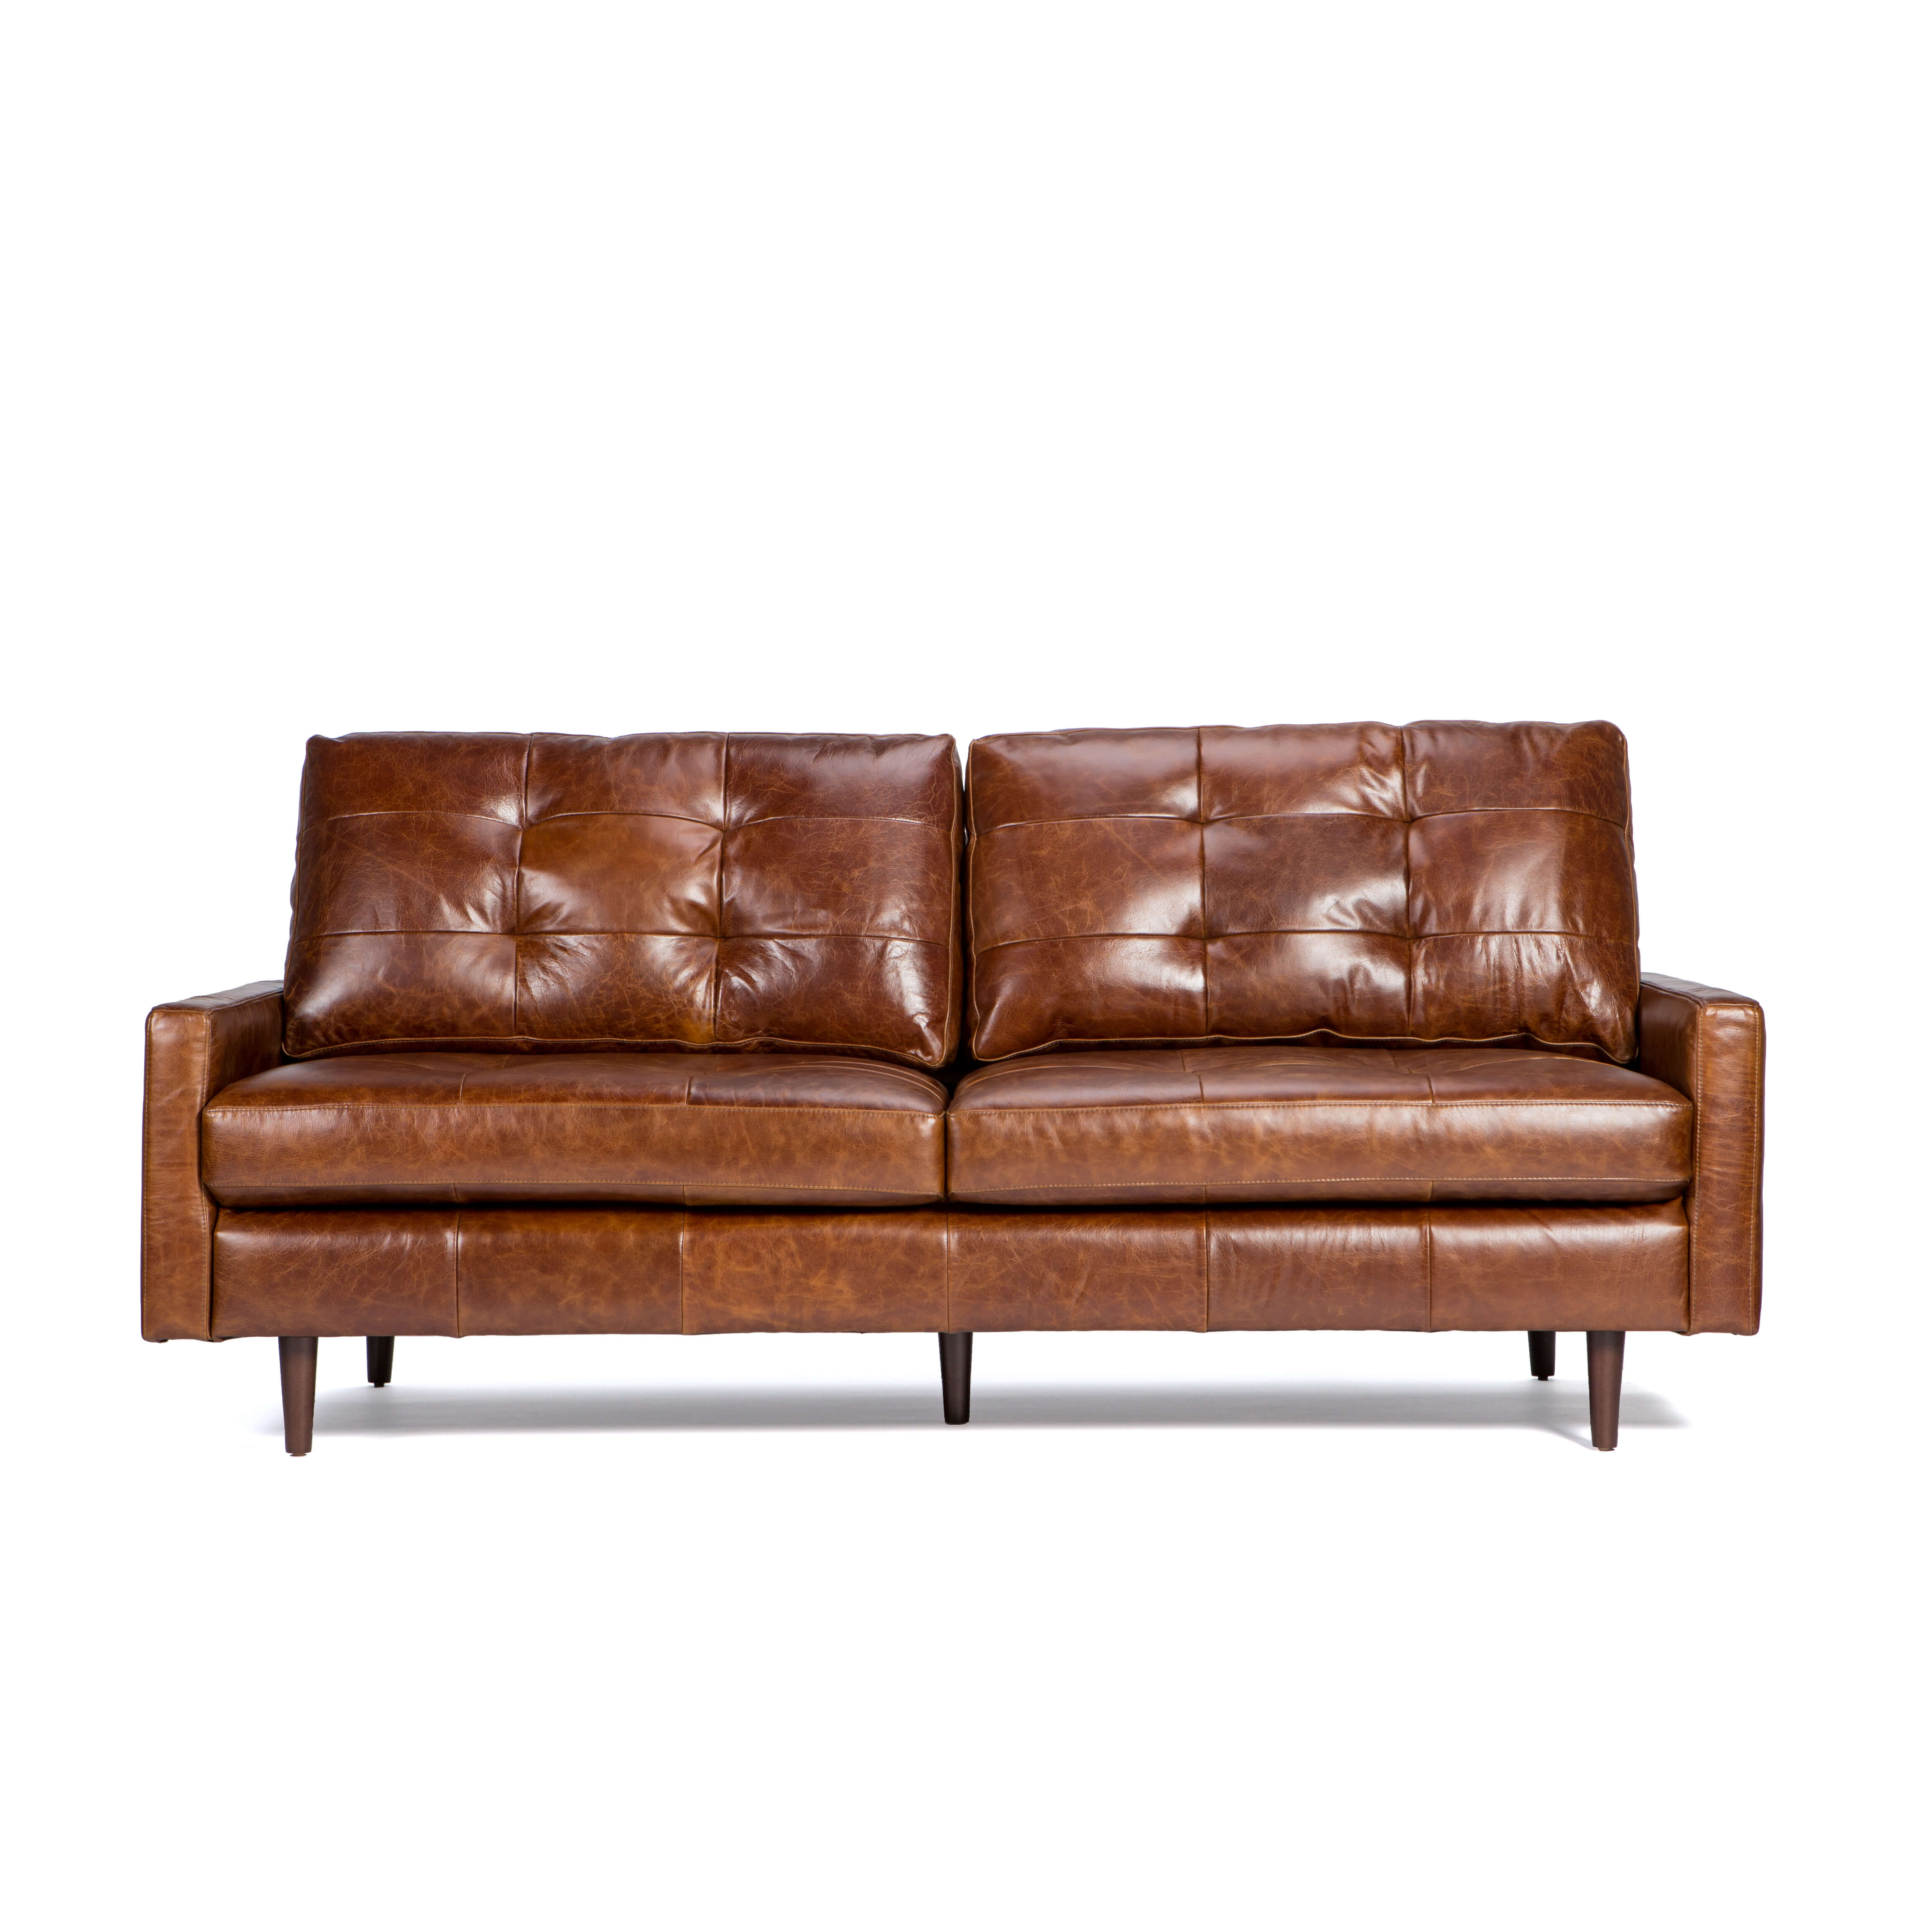 Leather Sofa With Tufted Back Cushion – Andrew – Zillo + Hutch Inside Andrew Leather Sofa Chairs (Image 20 of 25)